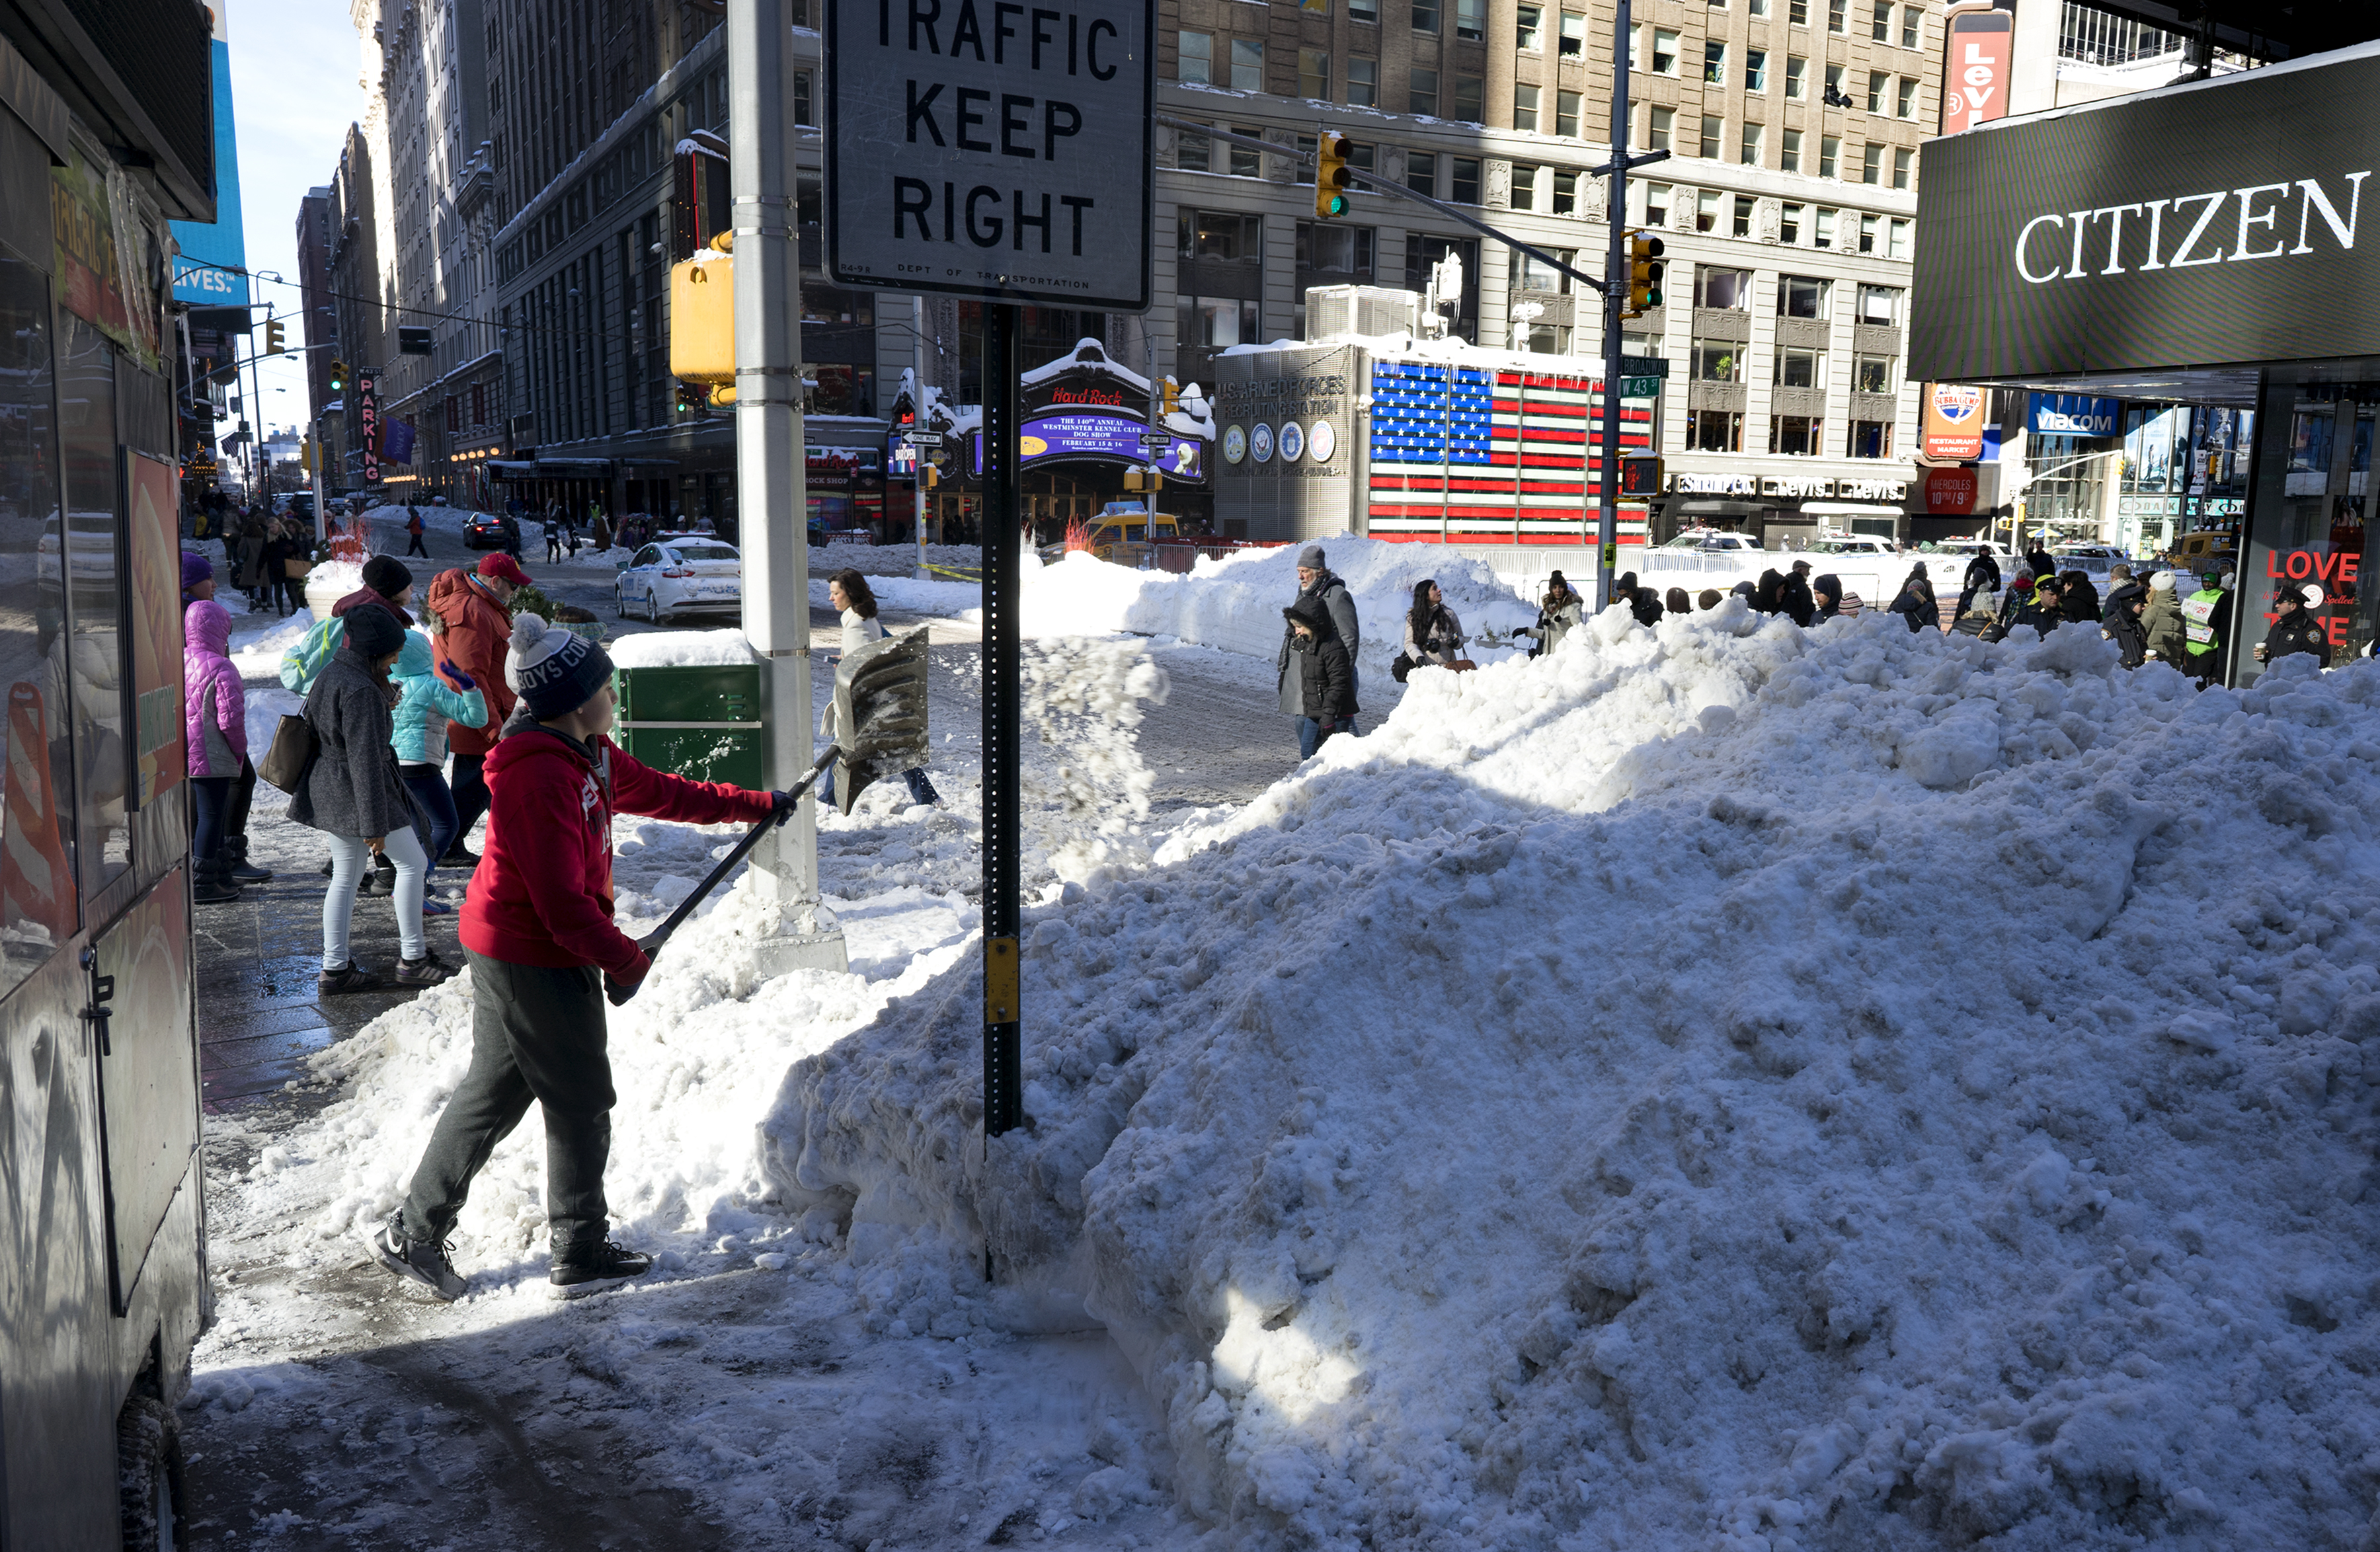 Clearing snow in Times Square